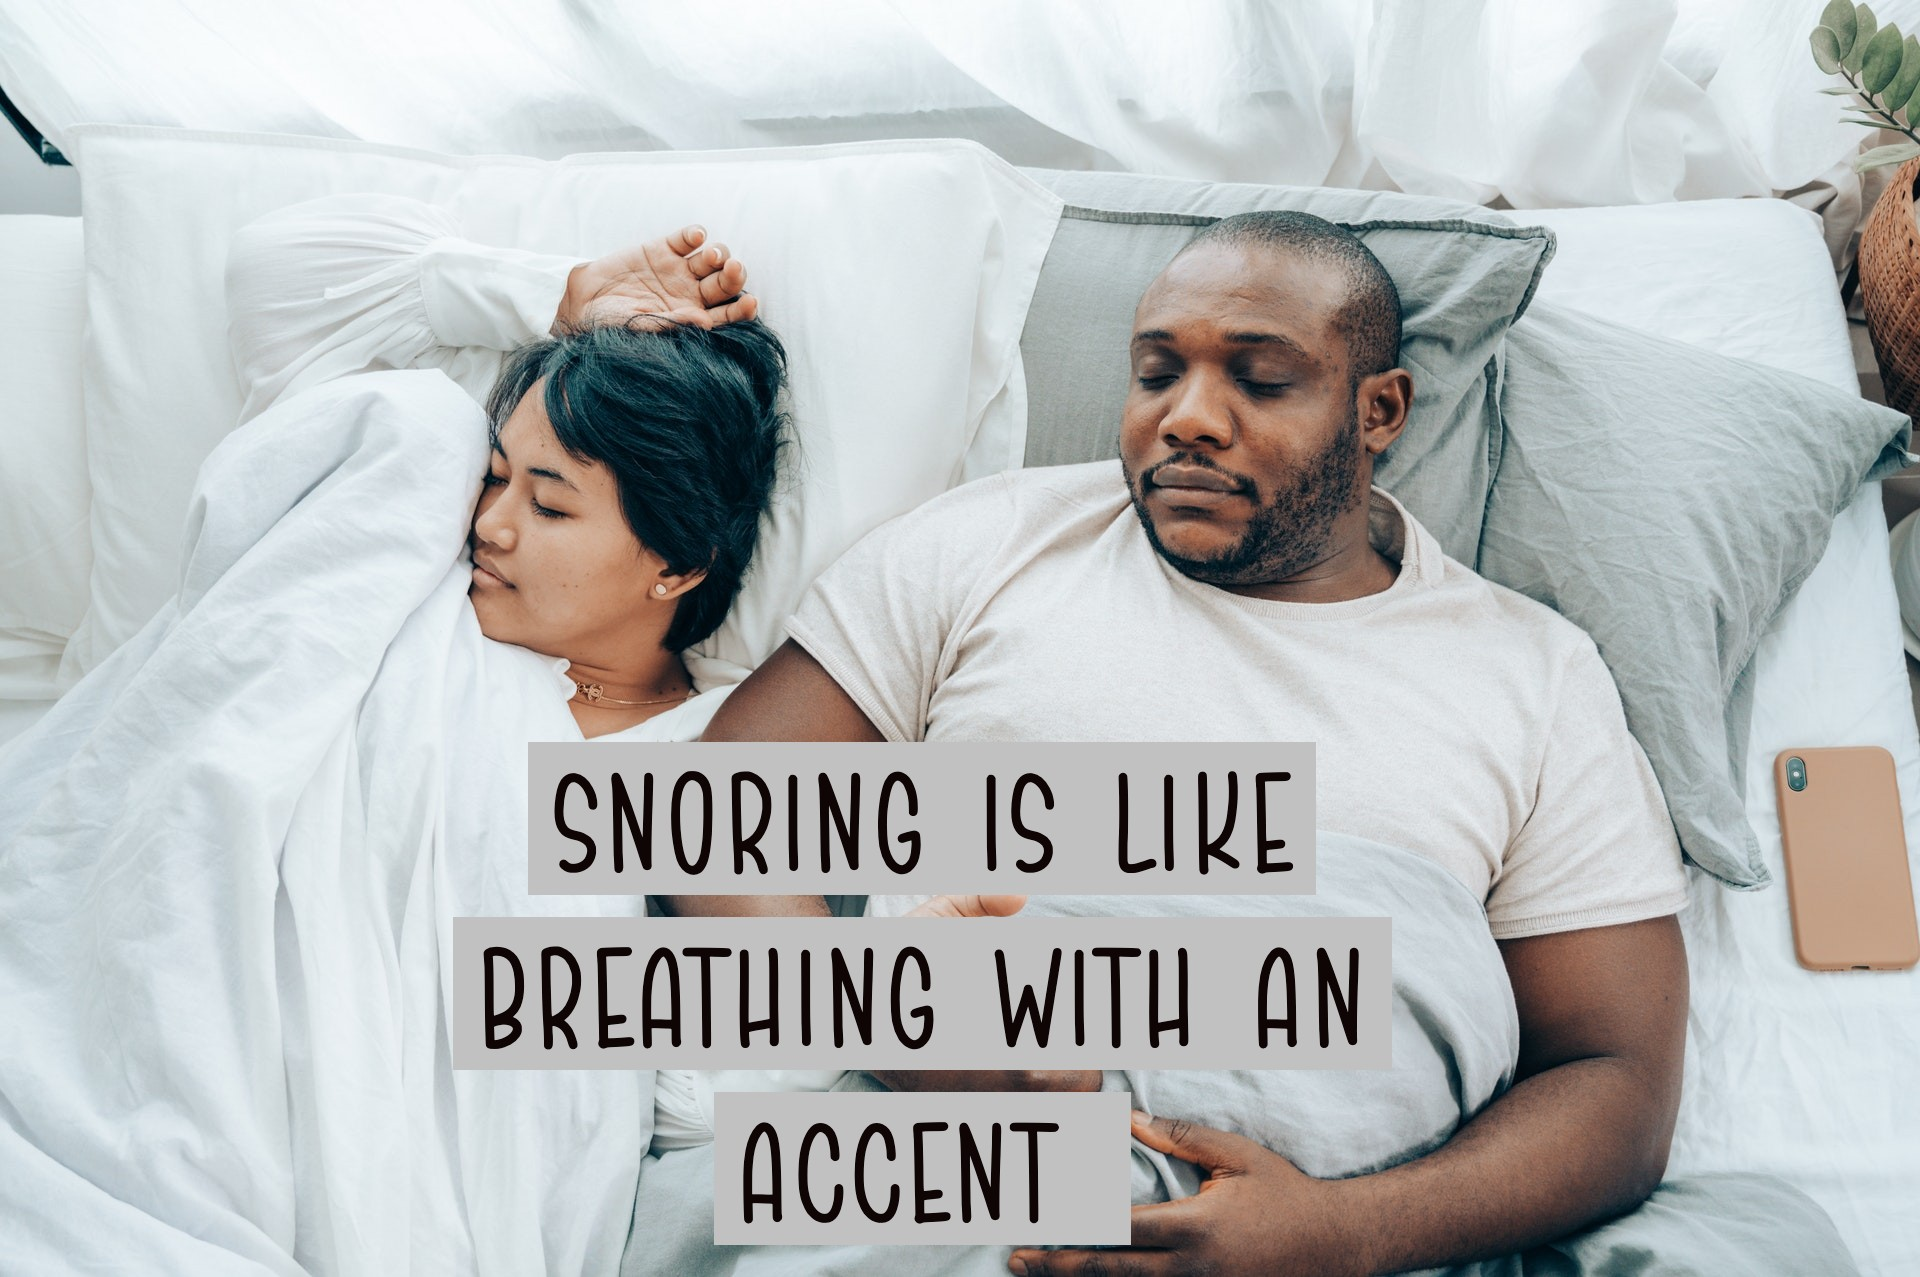 Snoring is like breathing with an accent.